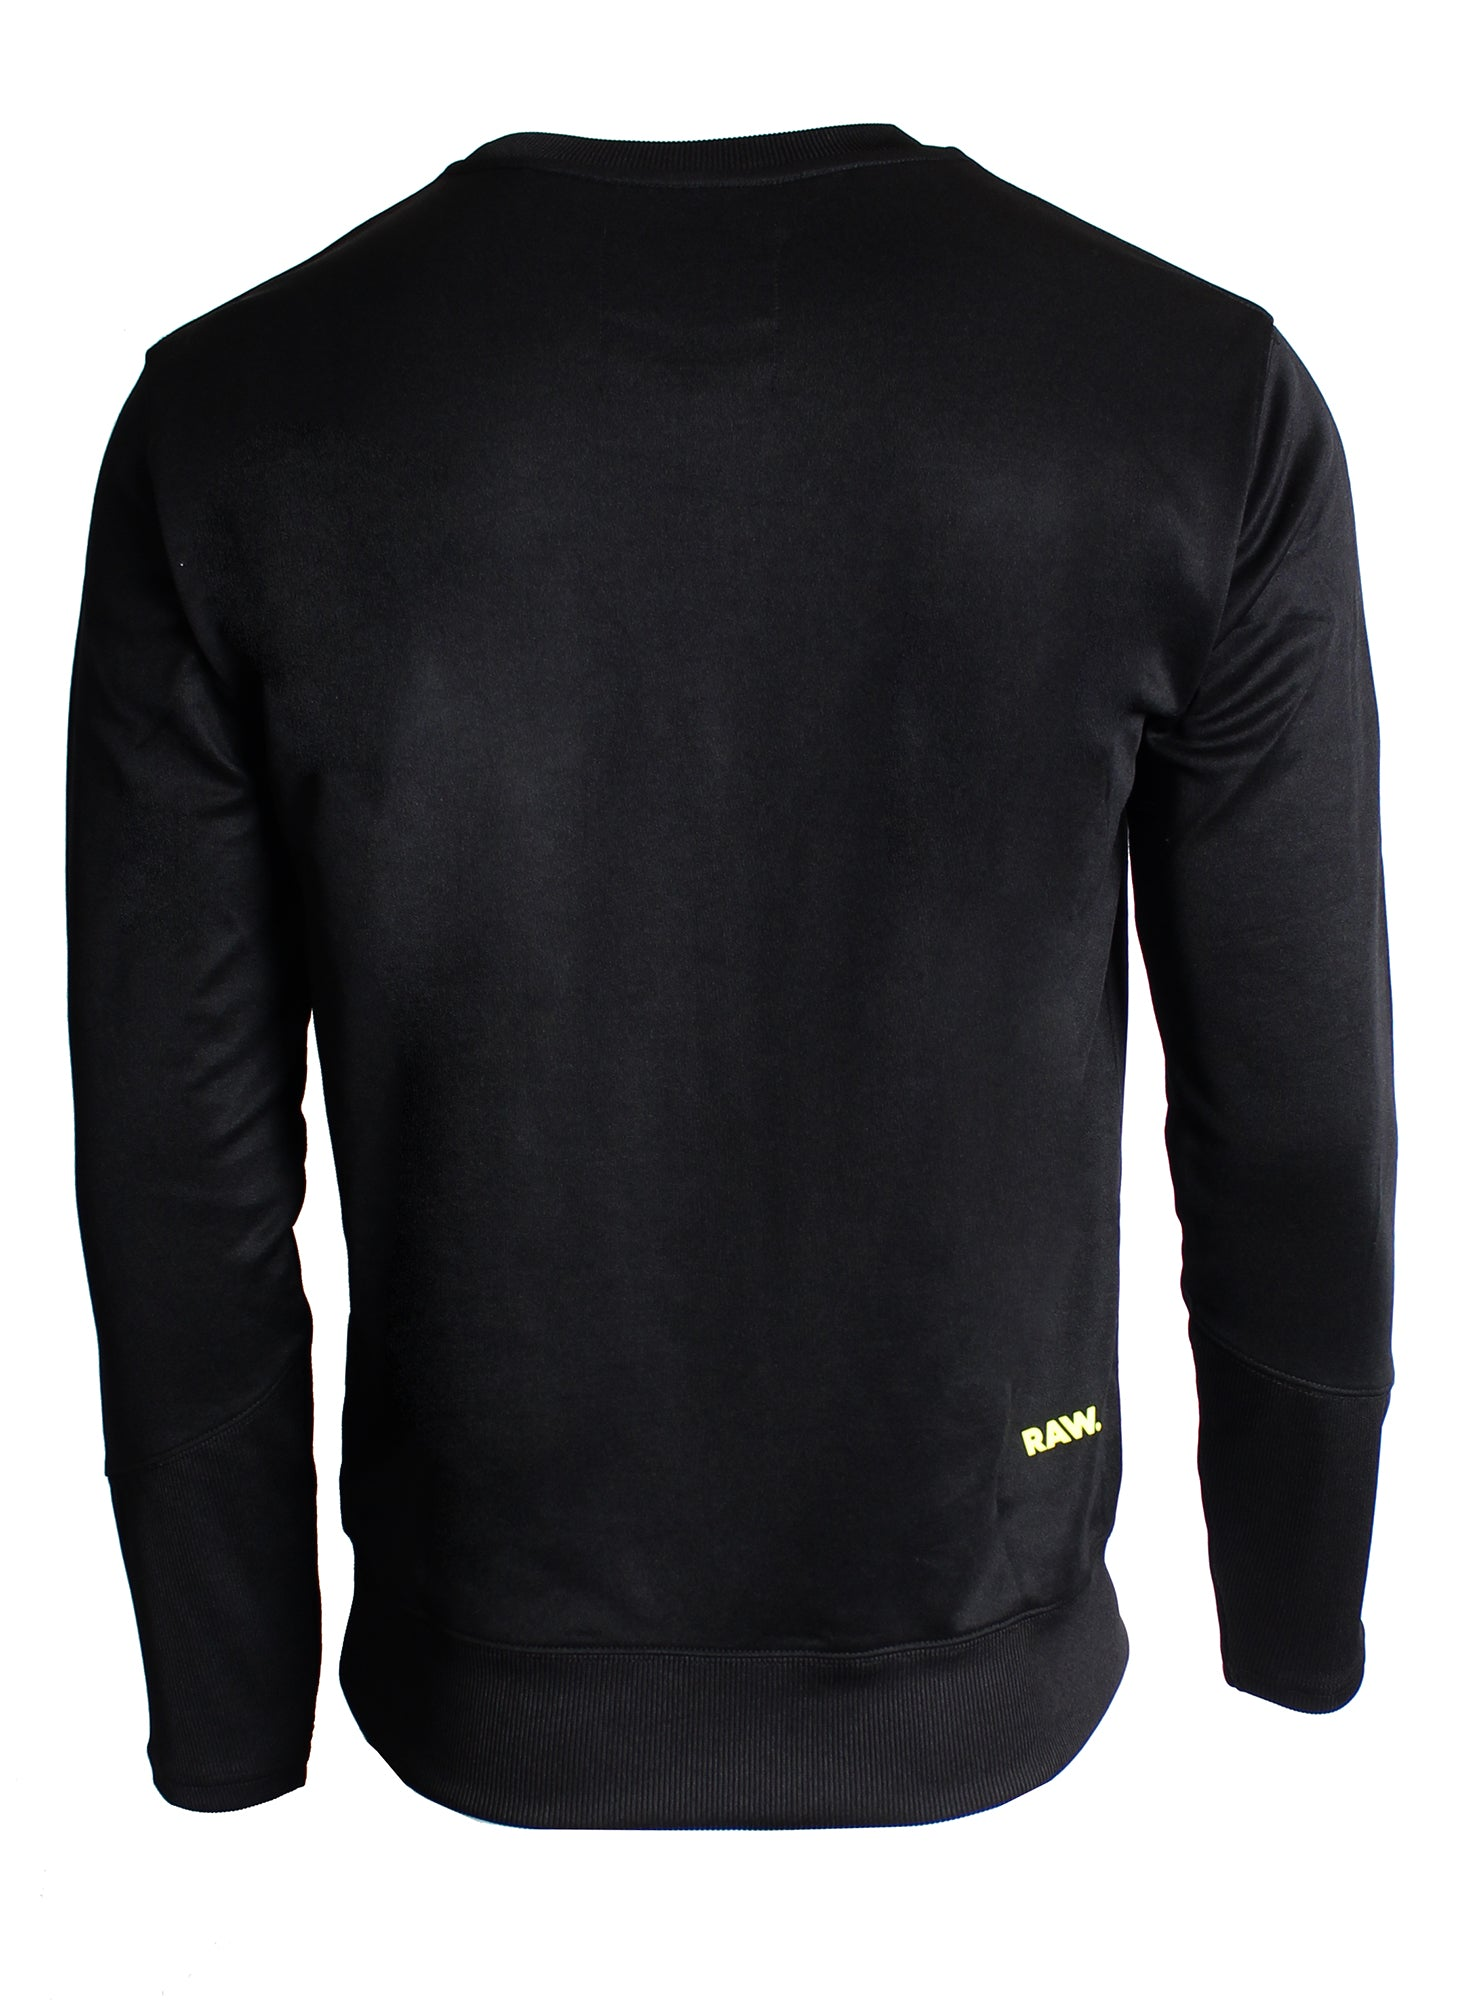 Carnix Slim Sweater